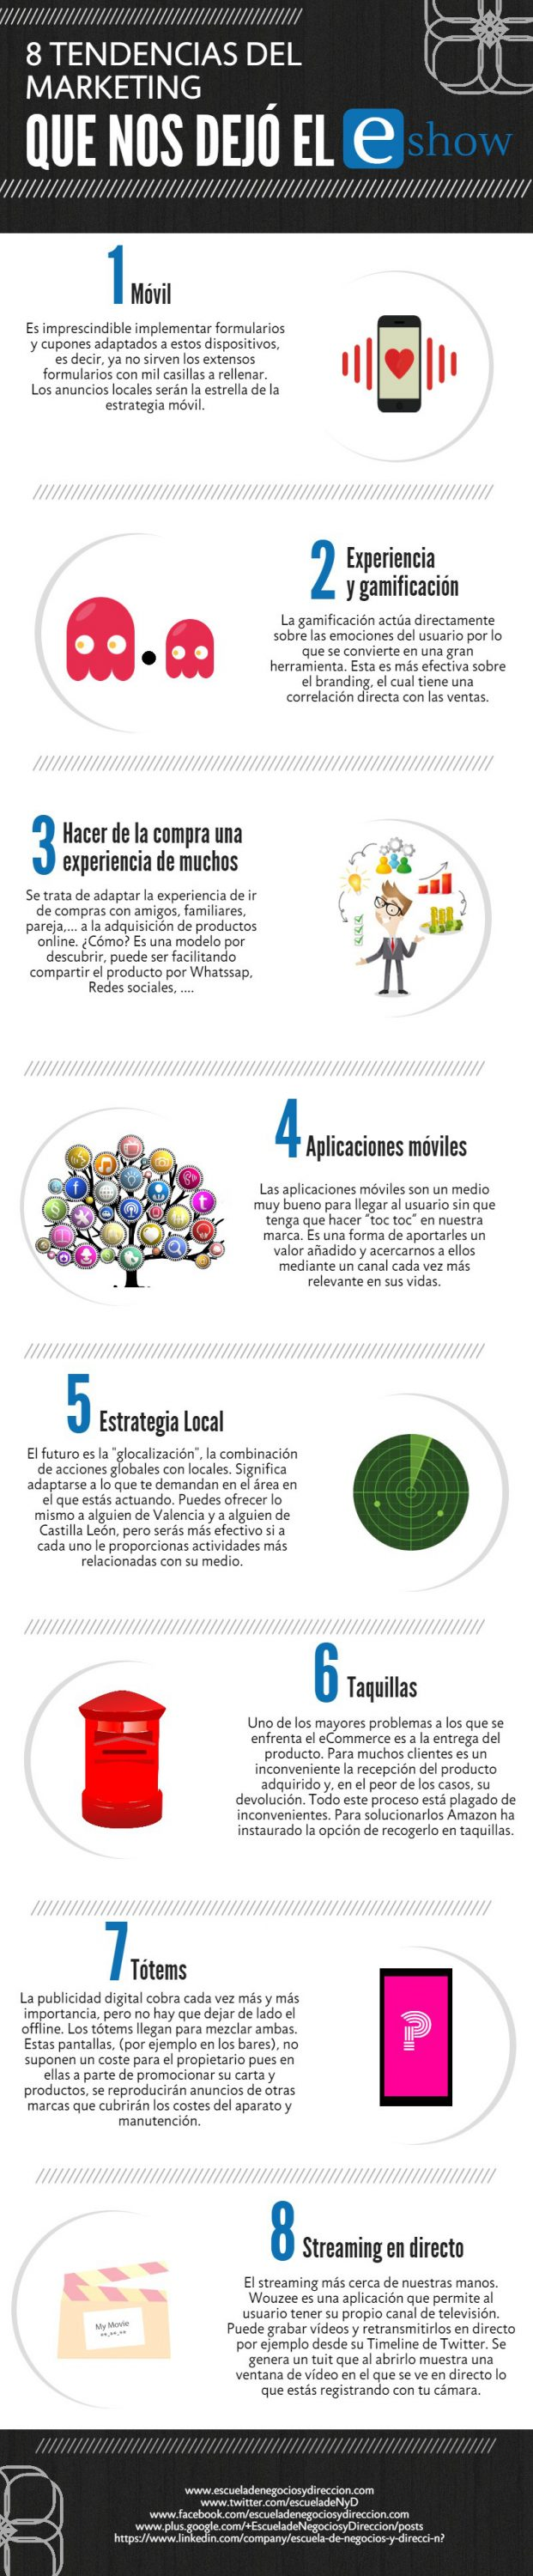 8 tendencias del marketing